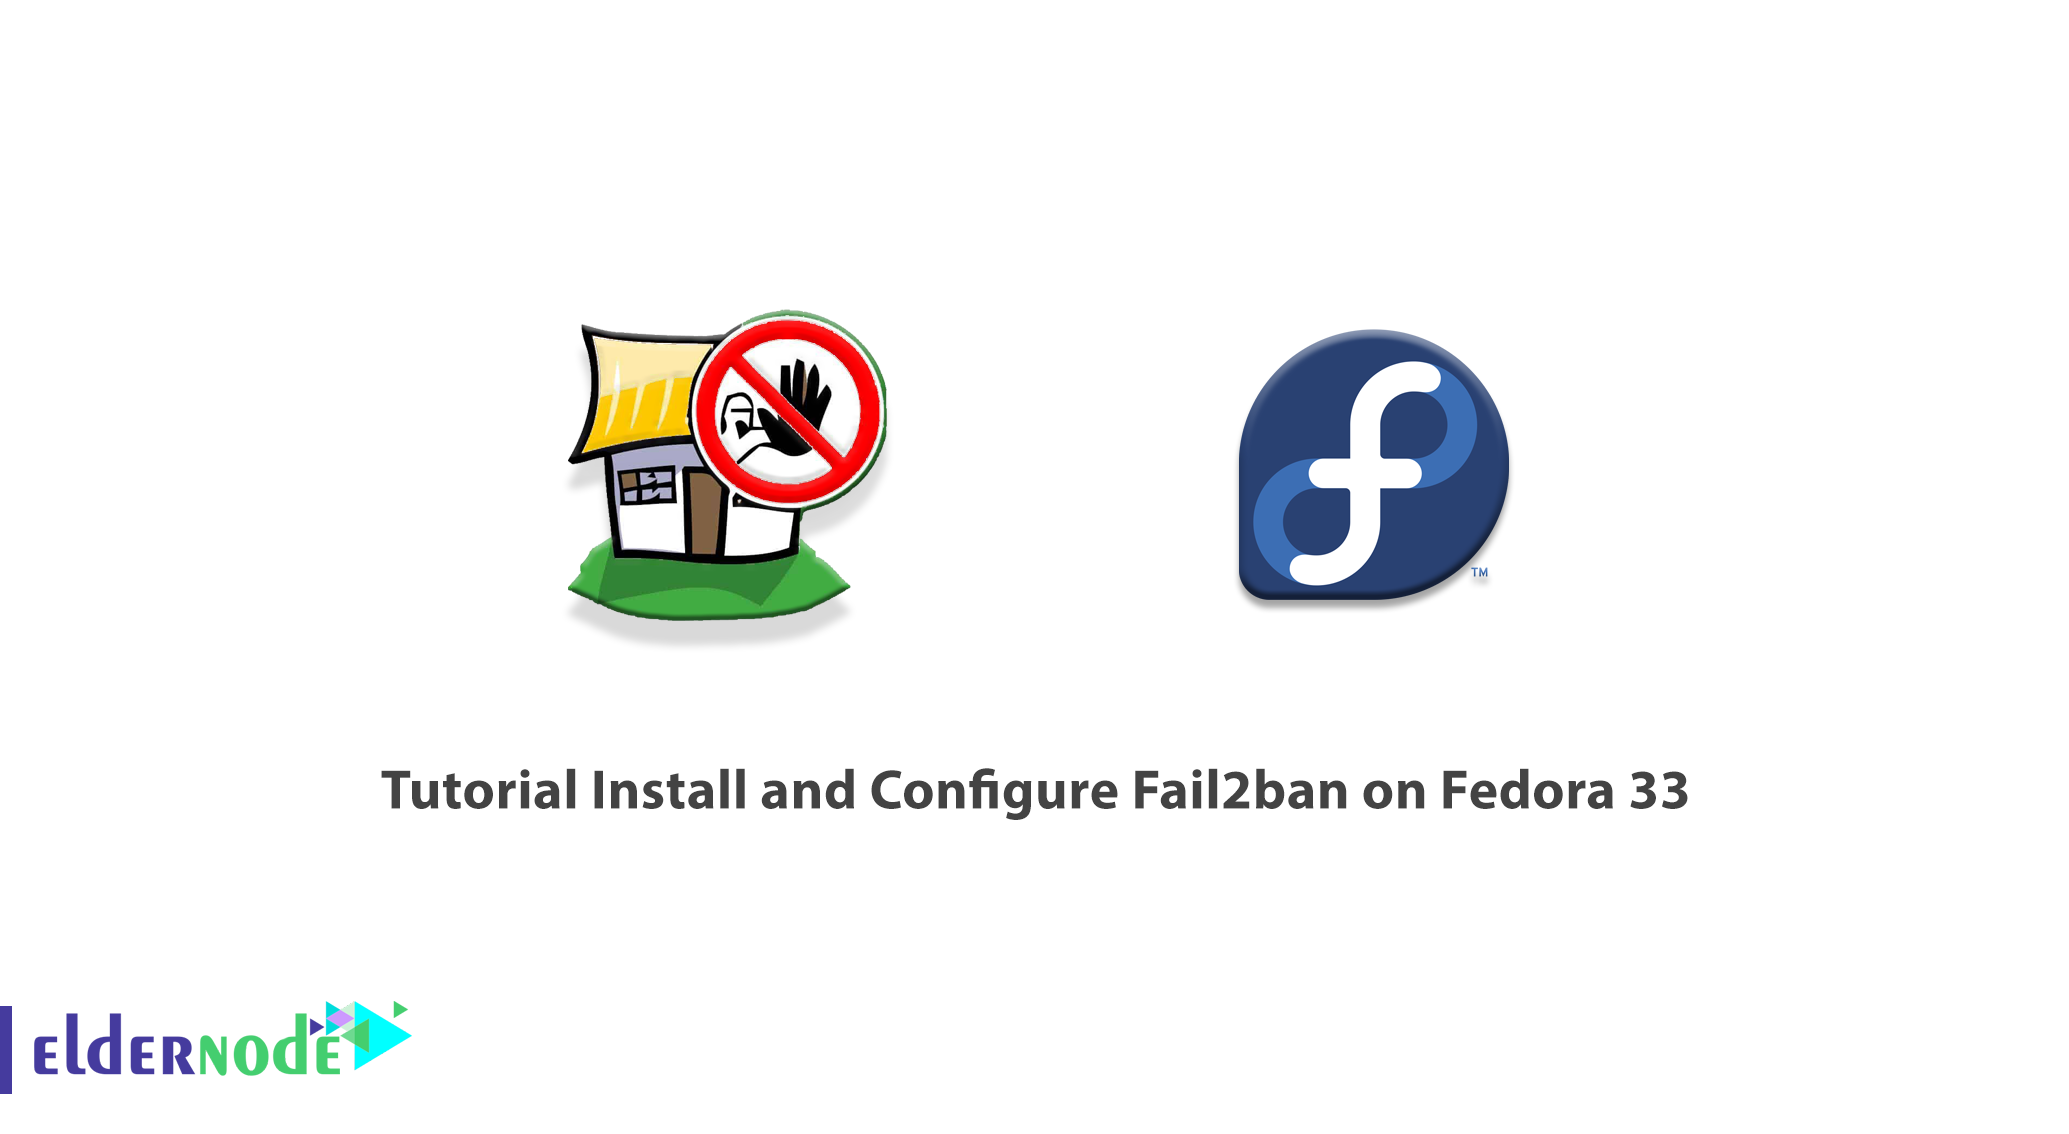 Tutorial Install and Configure Fail2ban on Fedora 33